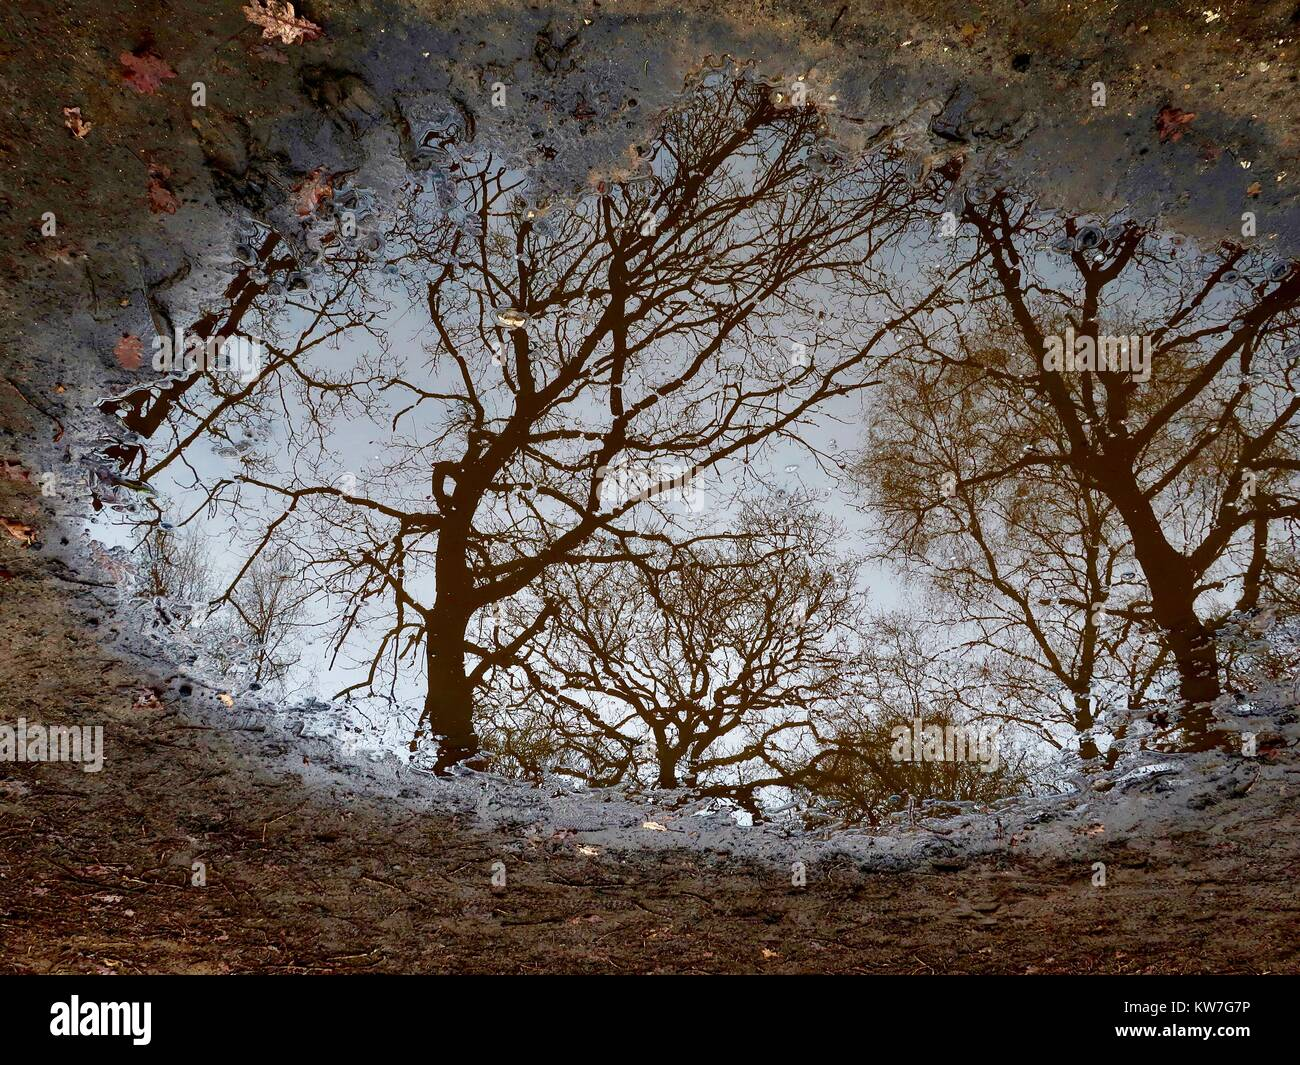 UK Weather: Winter trees reflected in a puddle on a damp and overcast New Year's Day in Kesgrave, Suffolk. - Stock Image